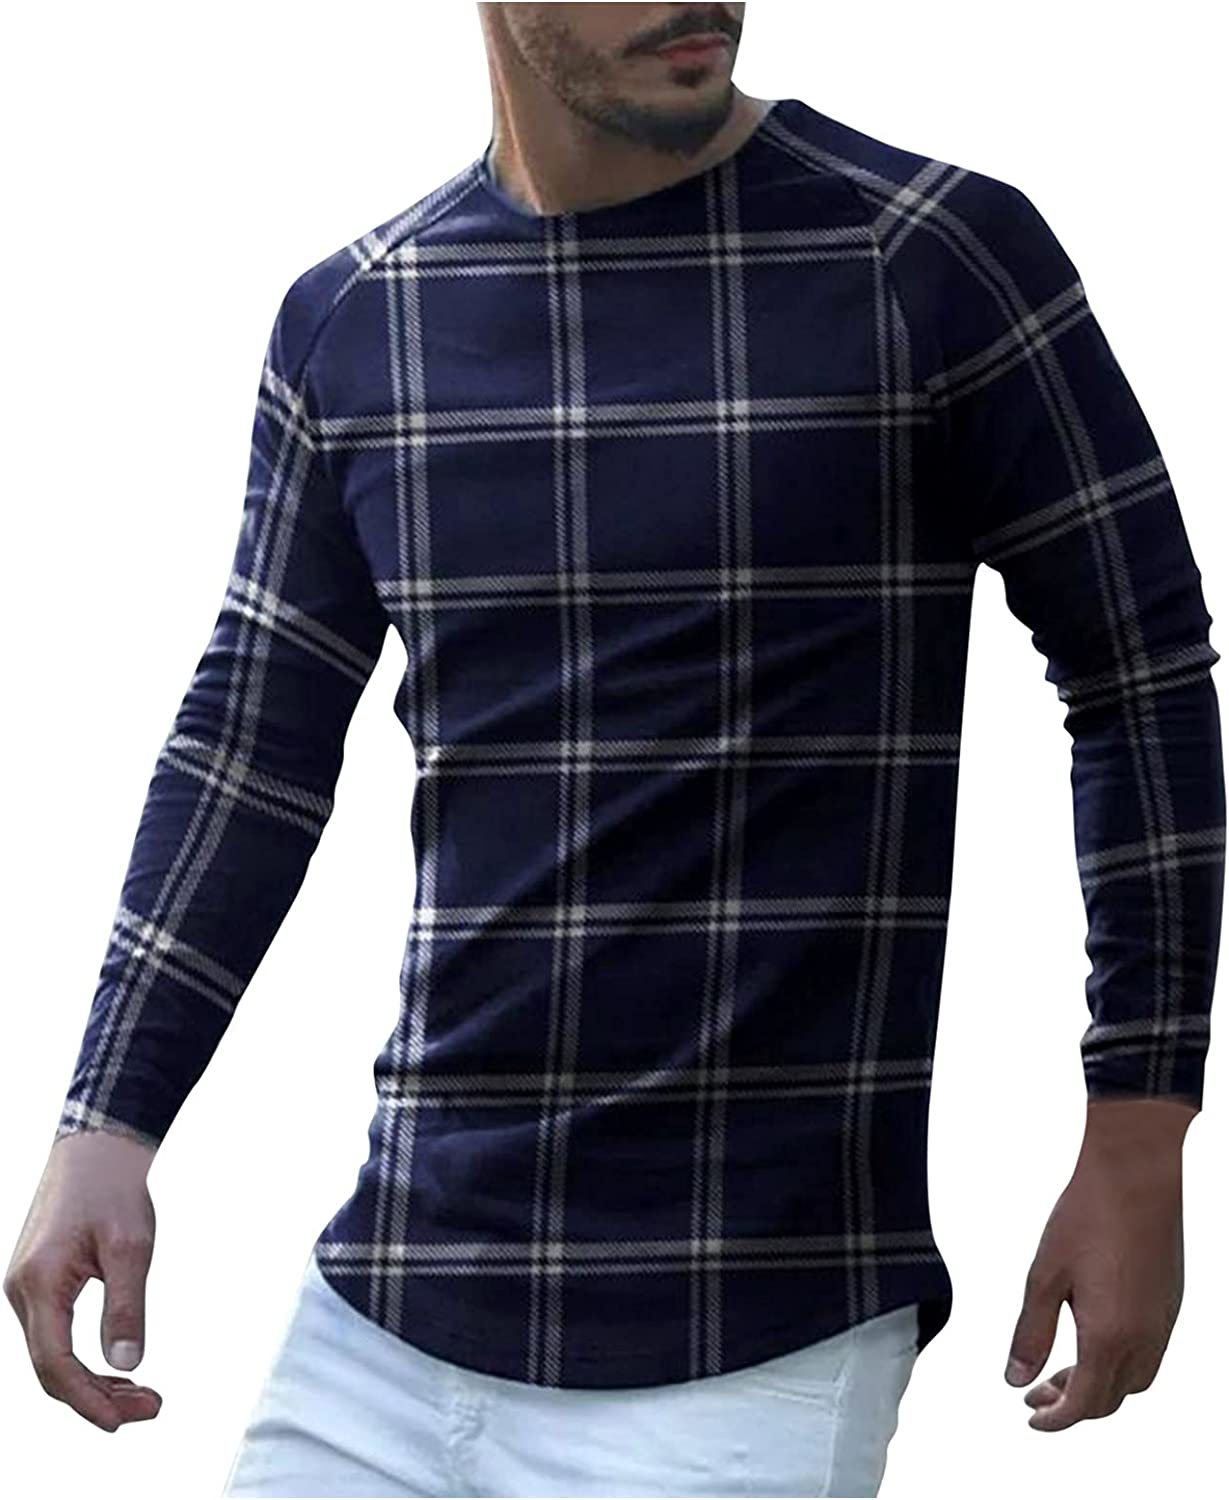 xoxing Shirts for Men Casual Autumn Plus Size Plaid Print Long Sleeve Tops Crew Neck Loose T-Shirt Blouse Pullovers